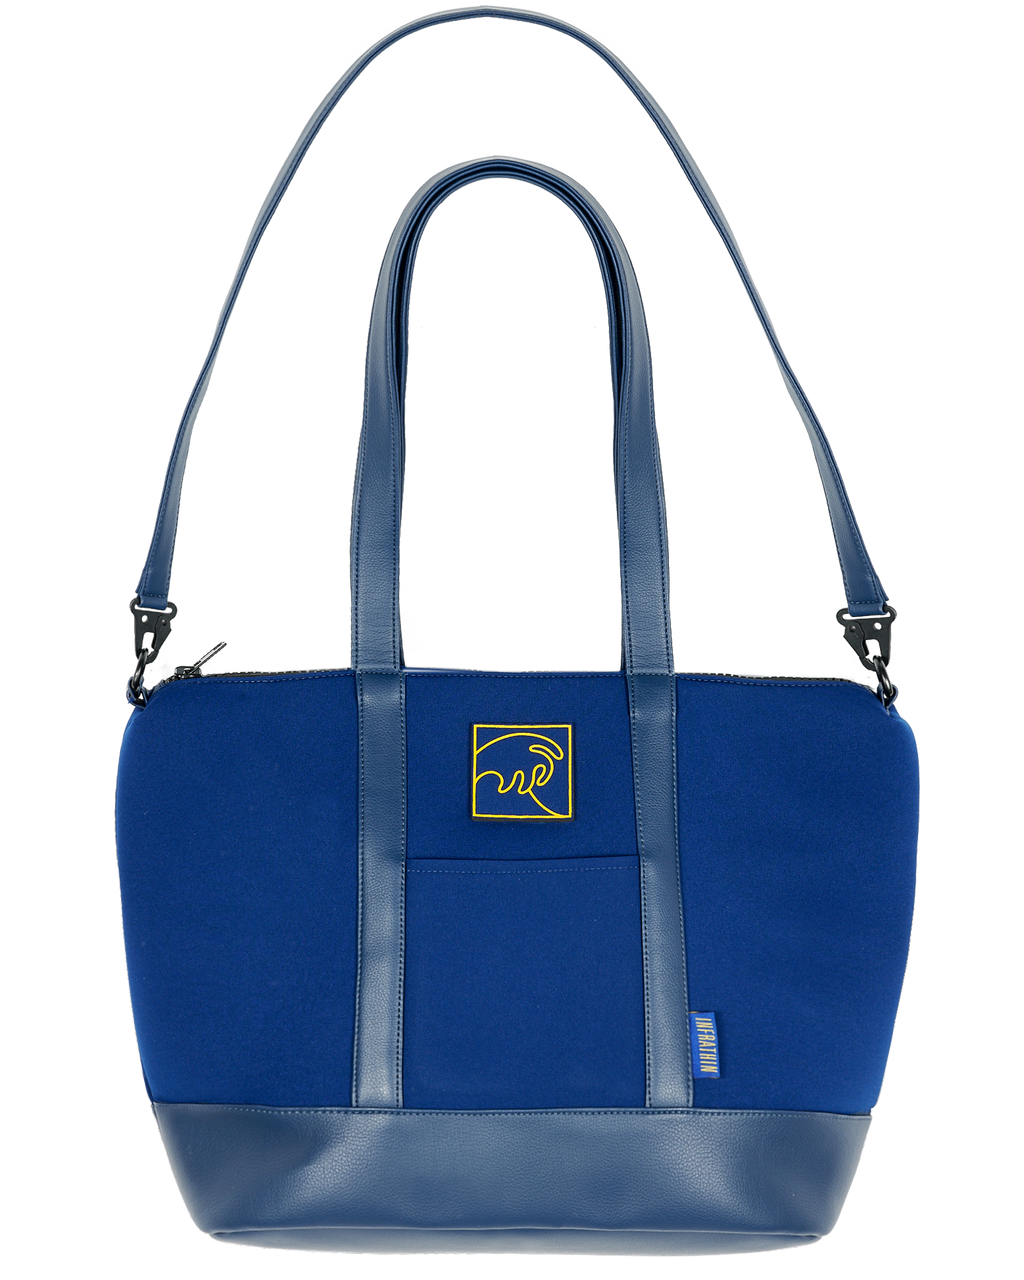 NAVY BLUE NEOPRENE OVERNIGHT BAG